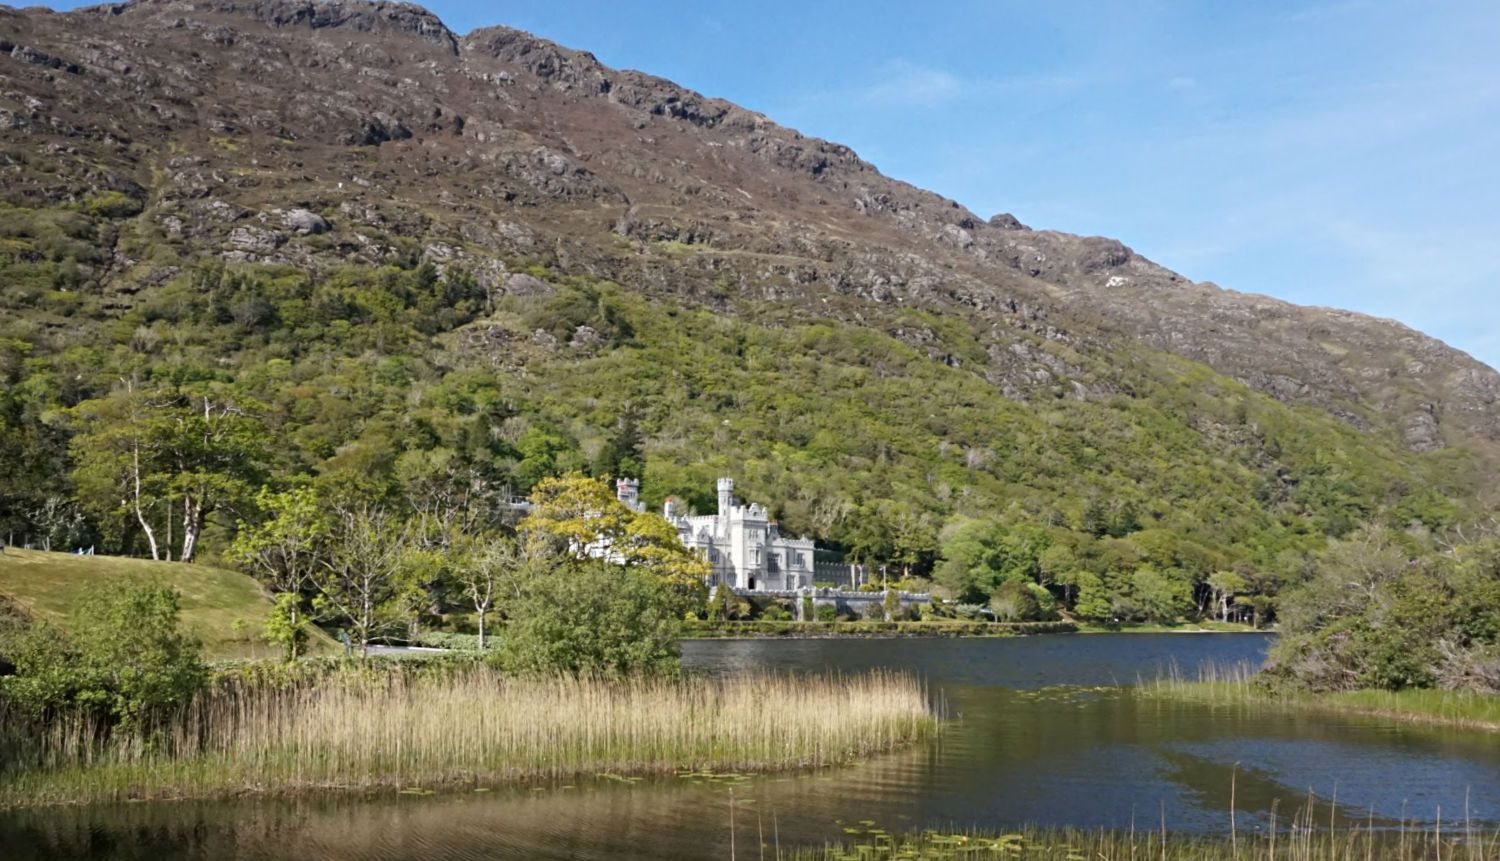 In the big league of west of Ireland attractions, here's Kylemore Abbey, nestling into the hill. (They used dynamite when it was originally constructed, to help it nestle.) Lots to see and do here - and the cafe is nice!